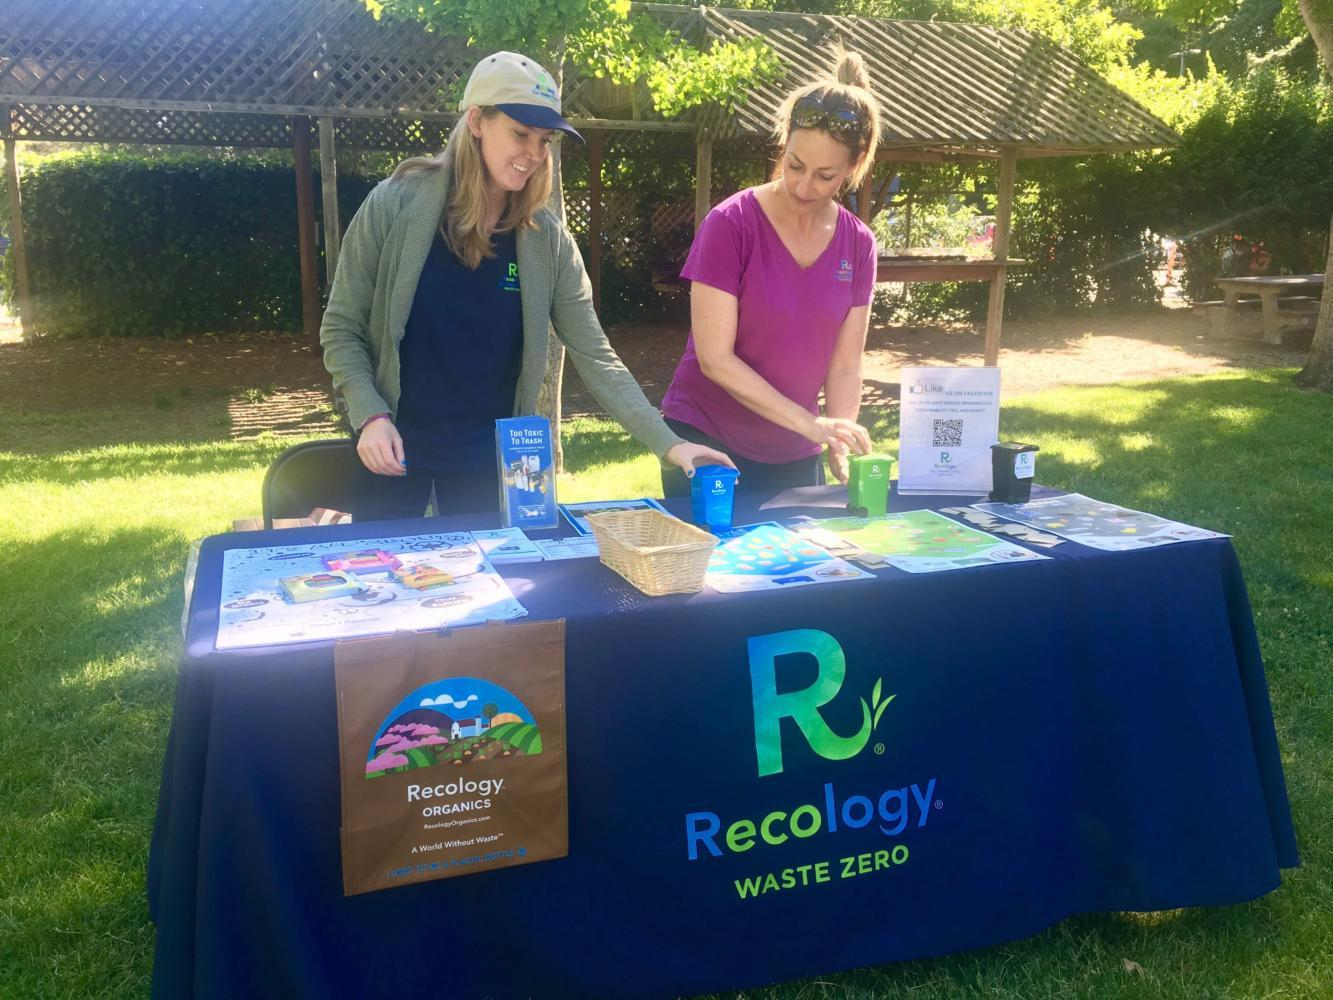 Gina Tretten and Rachael Lacey from Recology wait for people to stop by their booth.